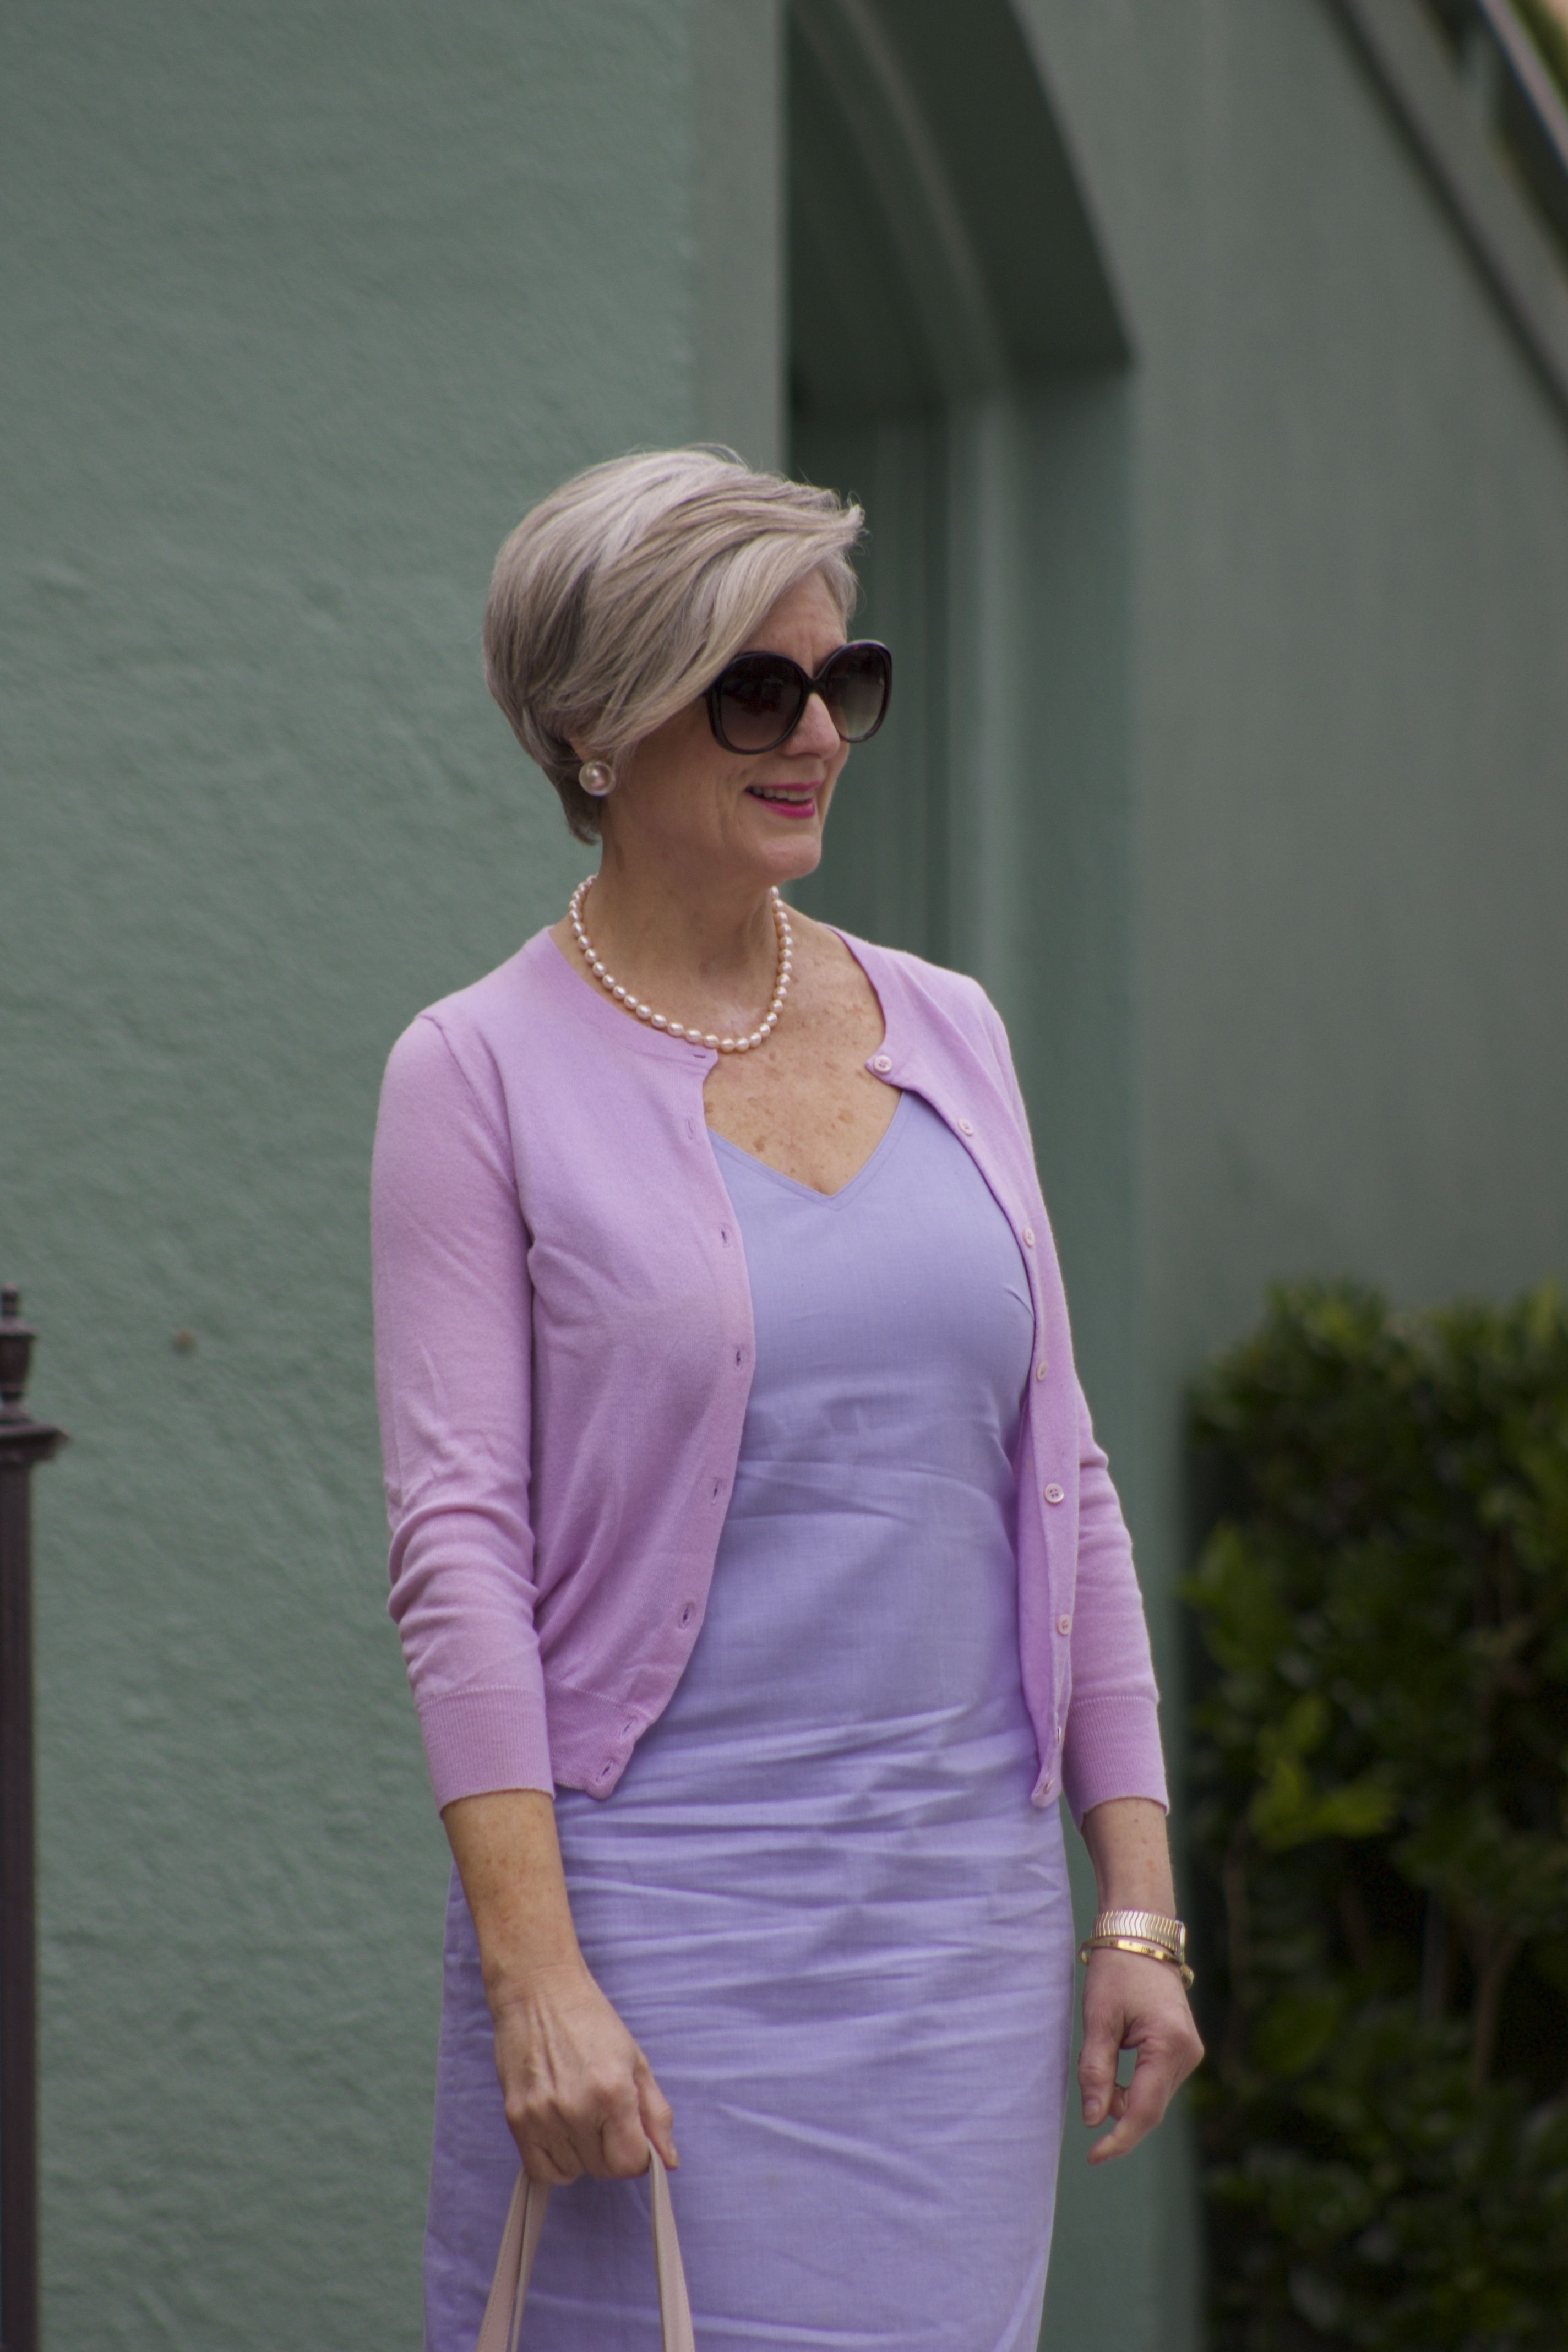 Pin On Summer Fashion By Style At A Certain Age [ 4272 x 2848 Pixel ]